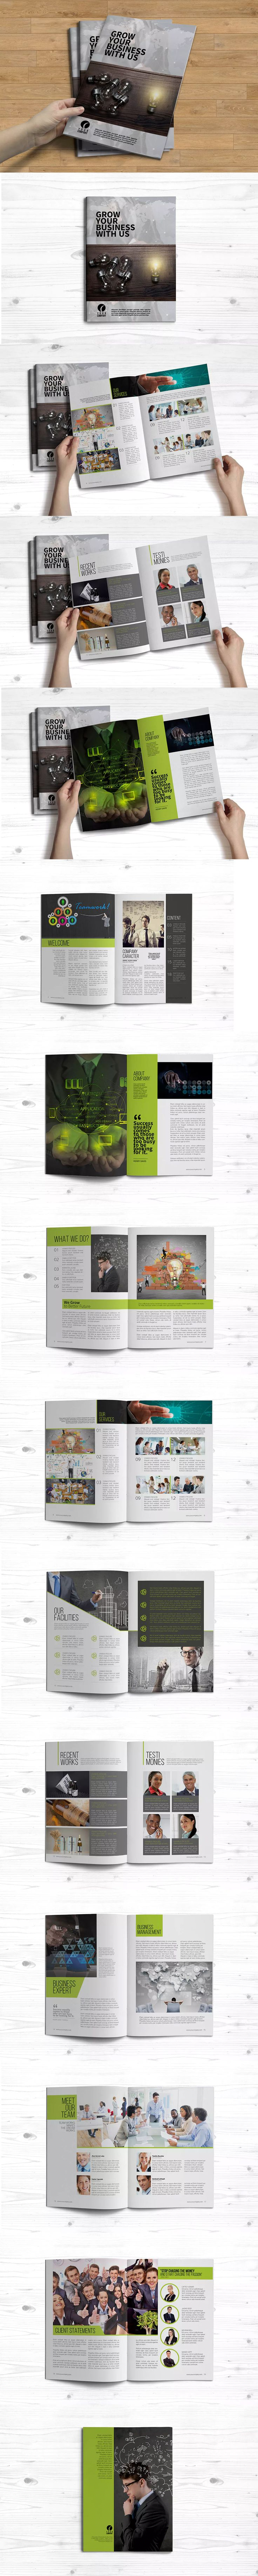 Corporate Brochure Template InDesign INDD A4 and US Letter Size